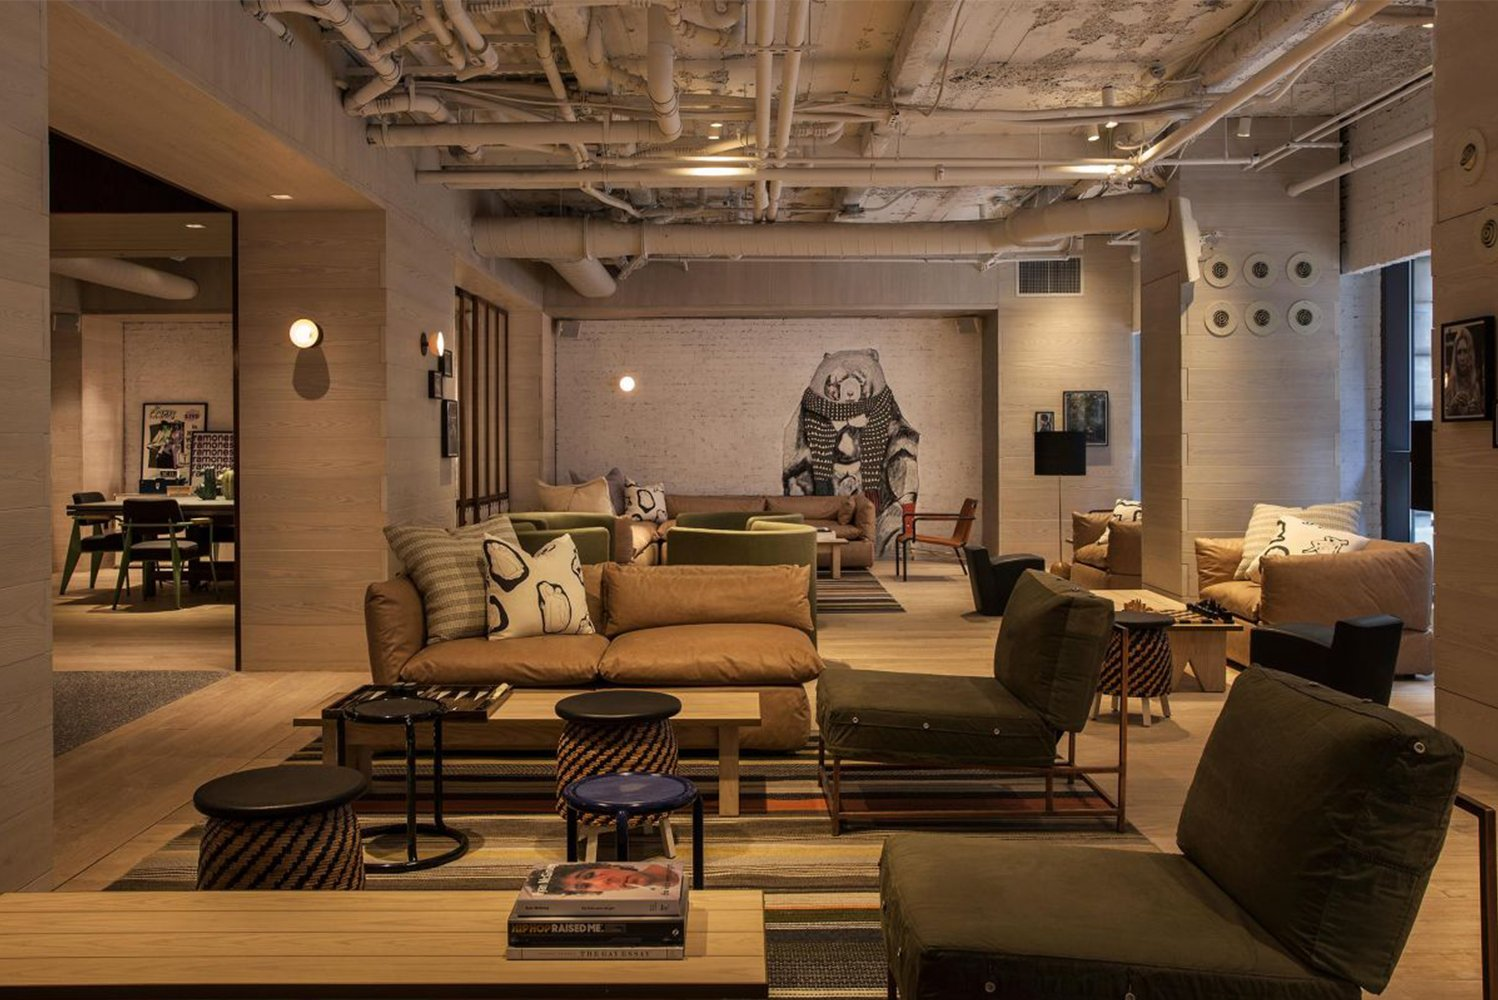 Moxy Times Square opened as the 15th property in the brand's portfolio, located in the former Mills Hotel in Manhattan.